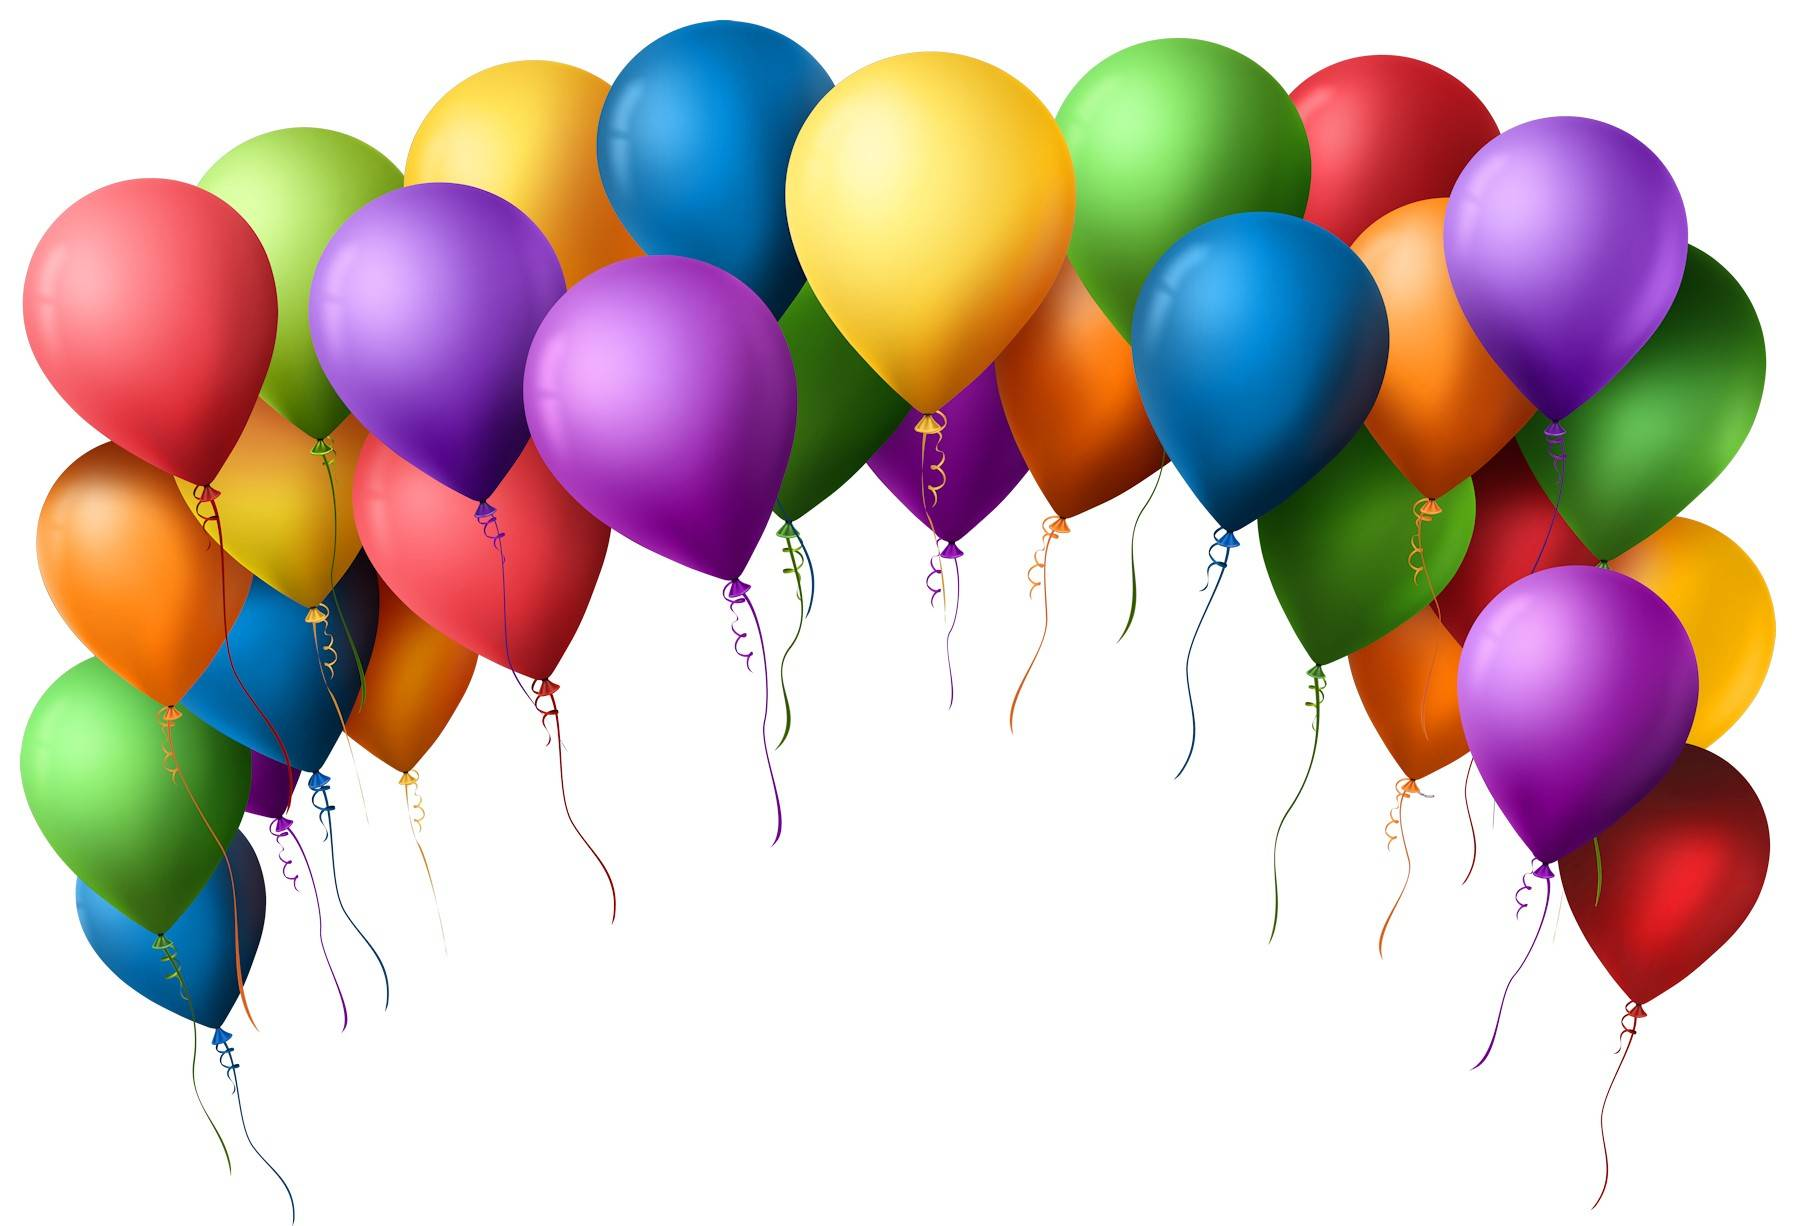 free-clipart-of-birthday-balloons-4-small.jpg